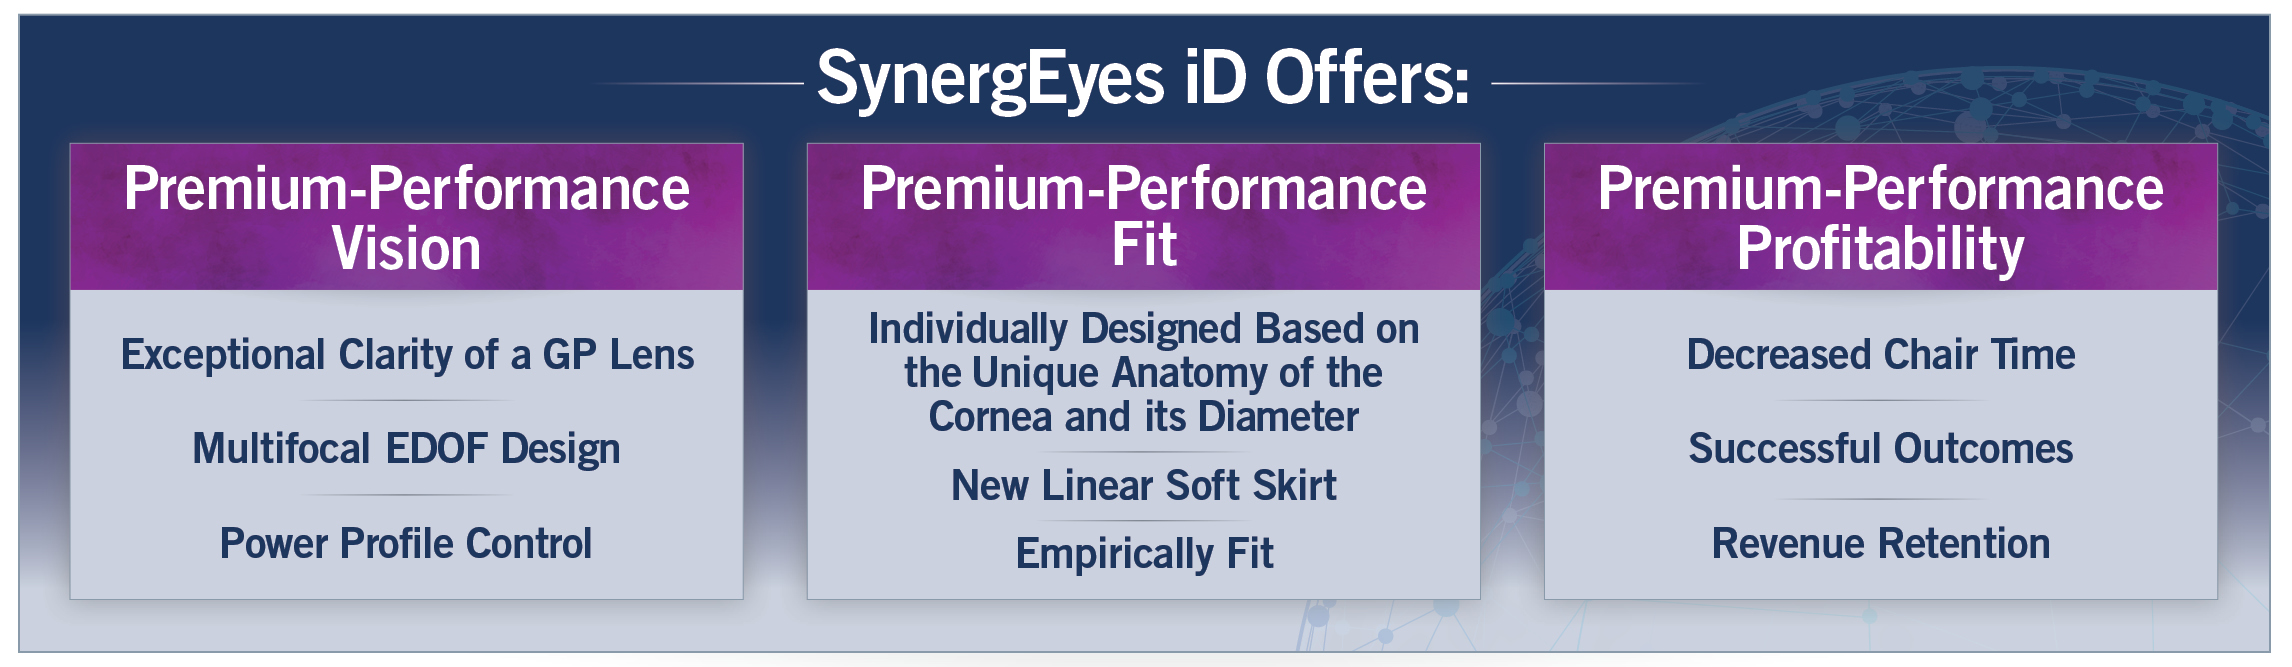 SynergEyes-iD-Offers_Premium-Performance_Vision-Fit-Profit